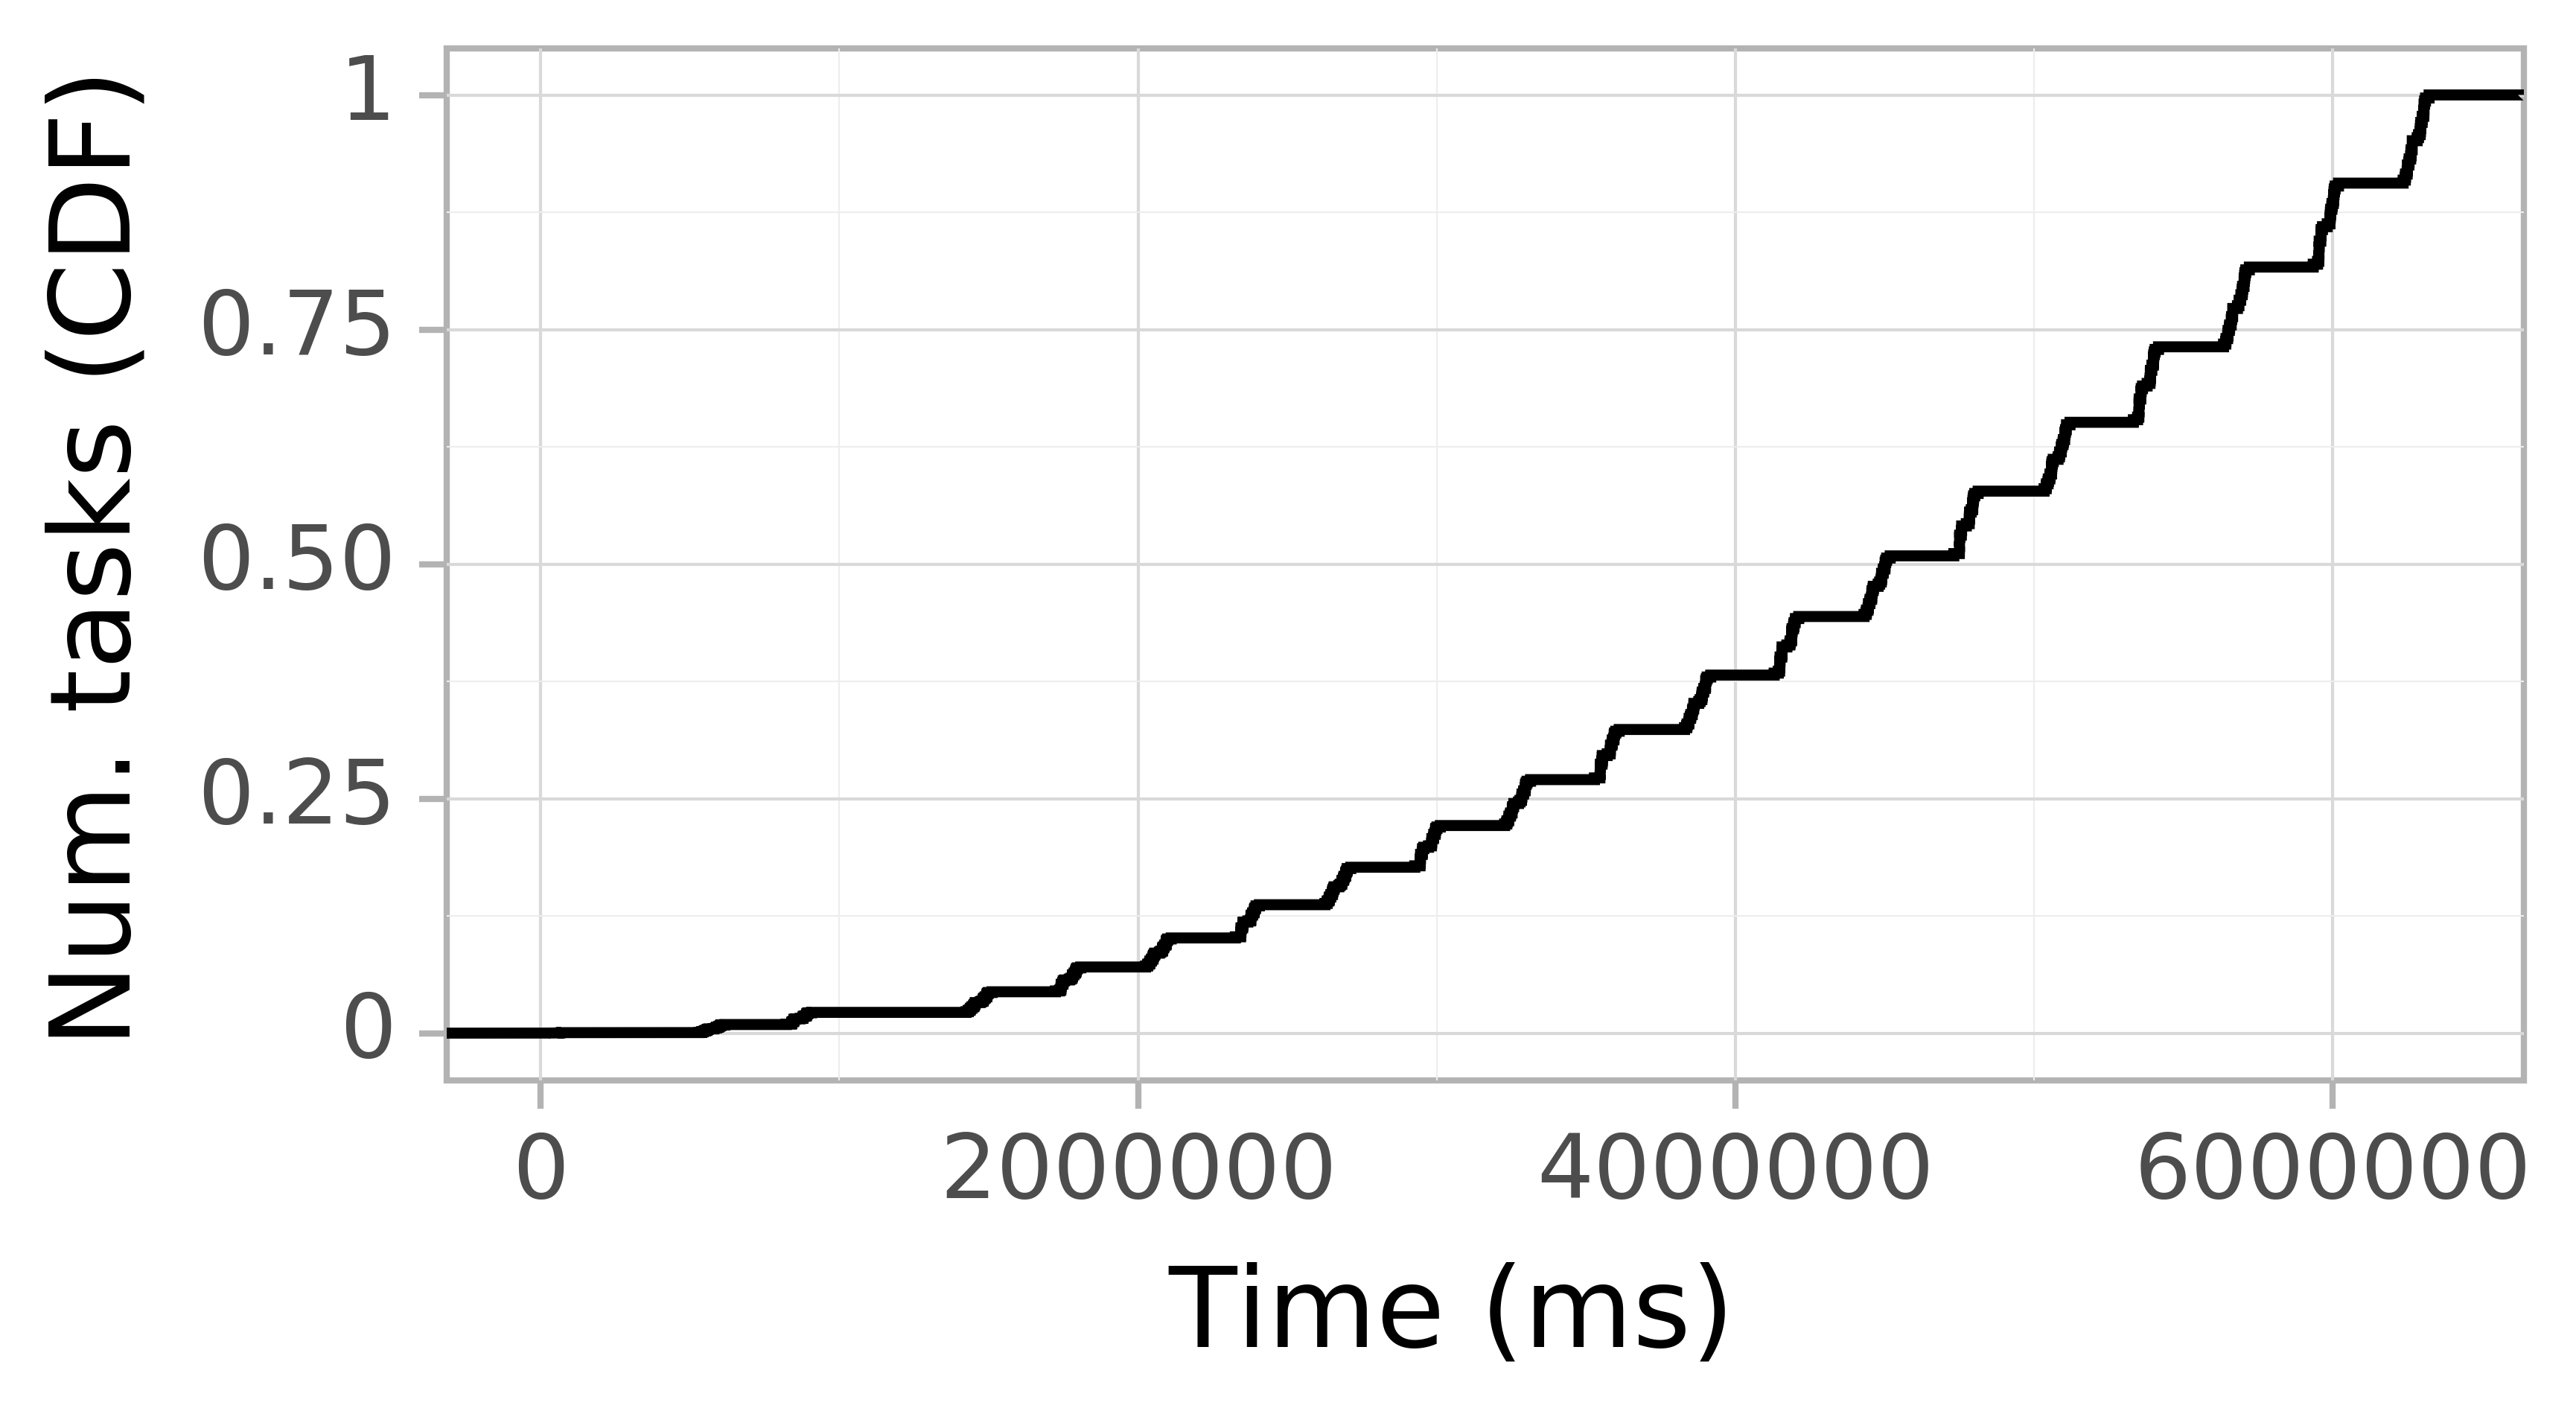 Task arrival CDF graph for the askalon-new_ee44 trace.